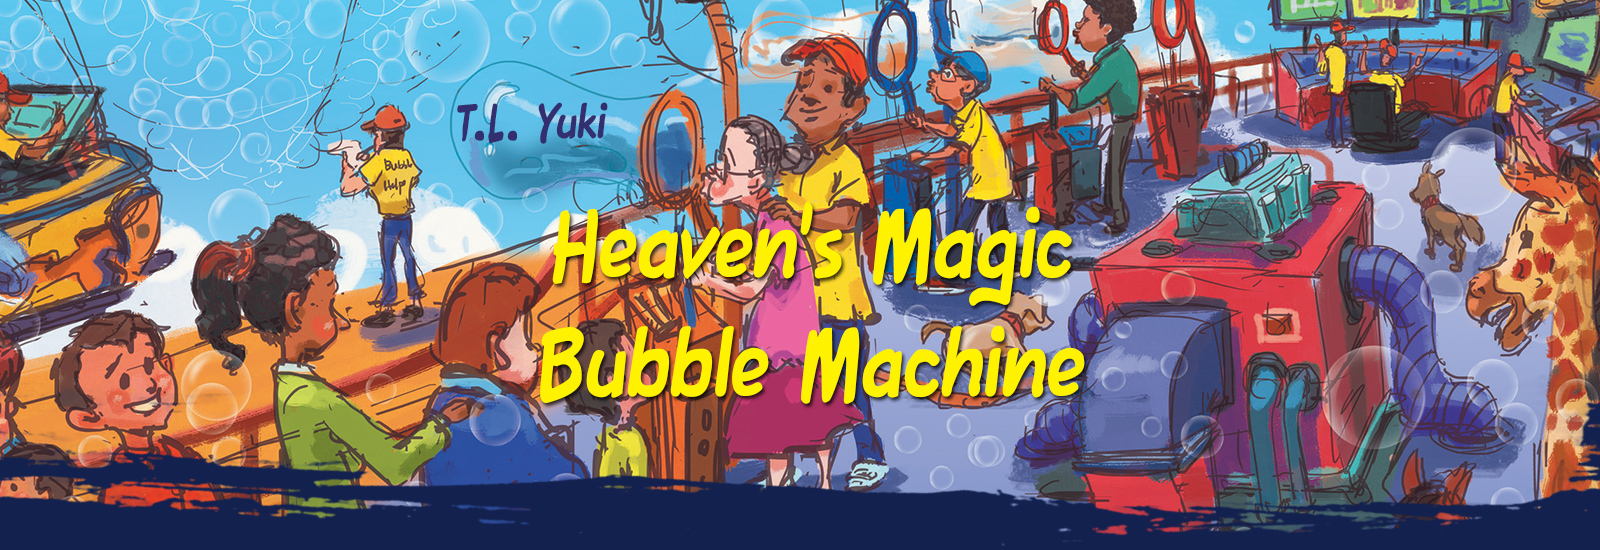 Heaven's Magic Bubble Machine